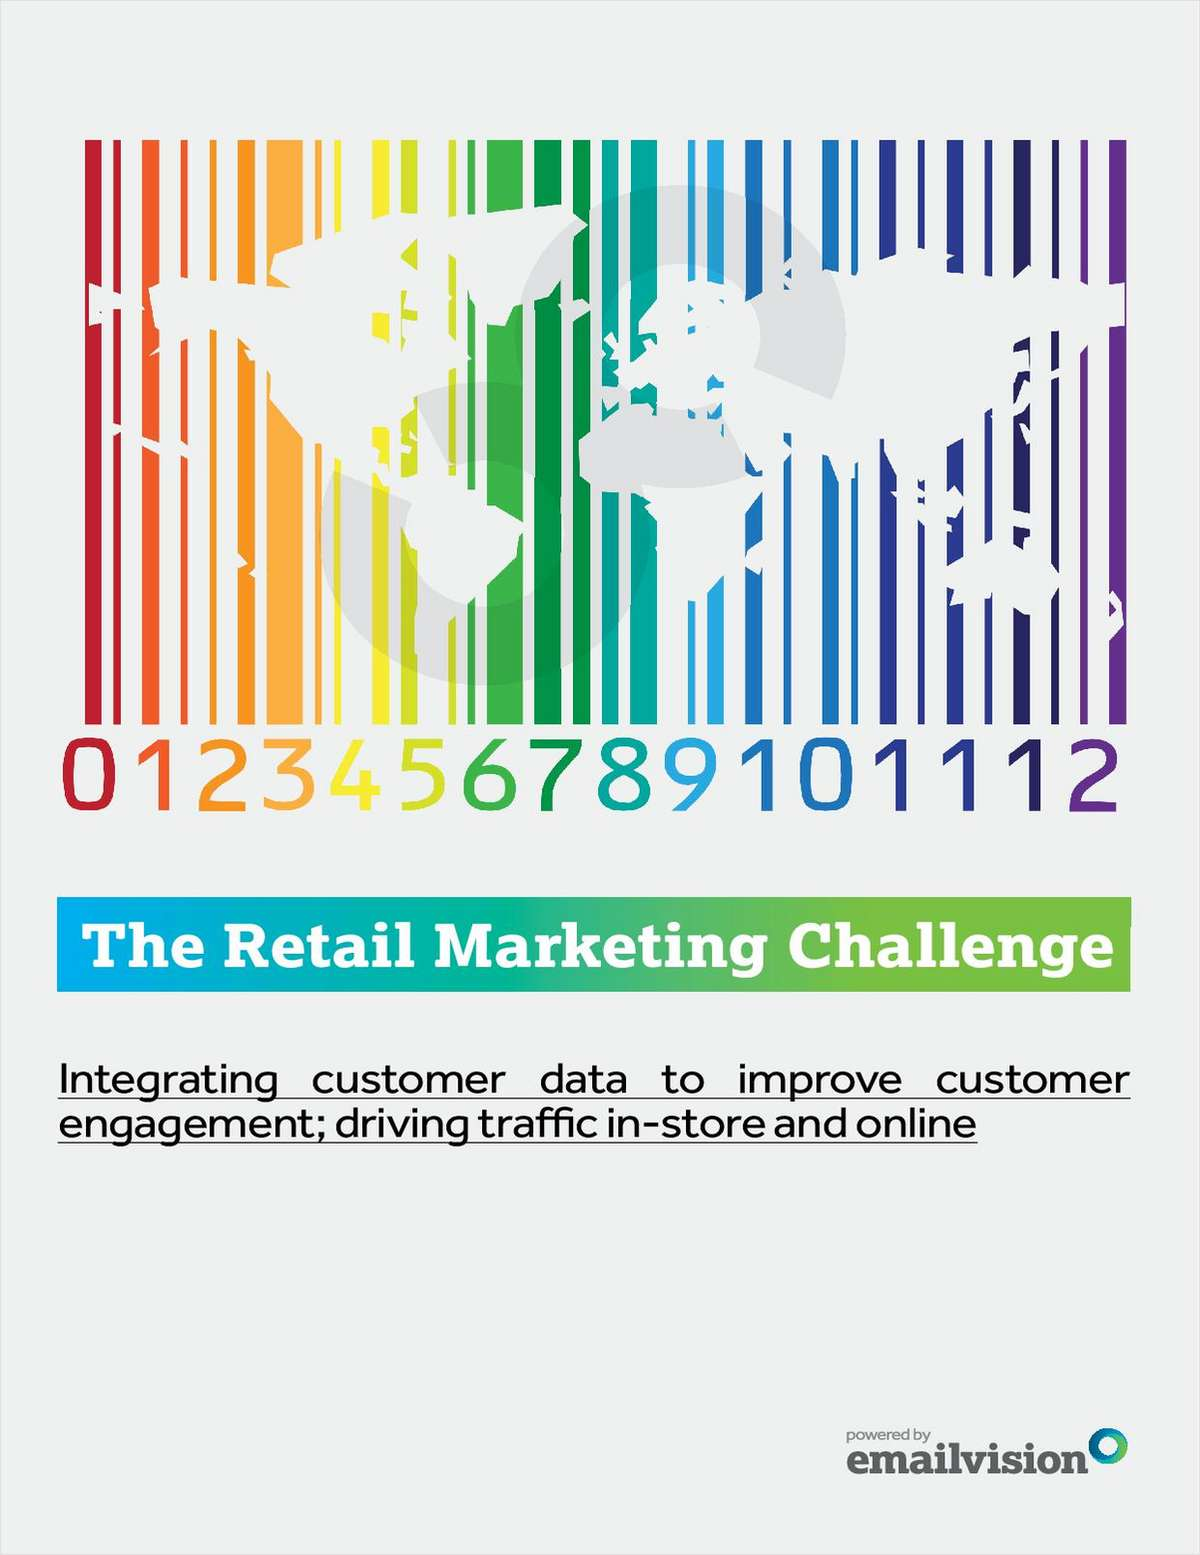 The Retail Marketing Challenge Report